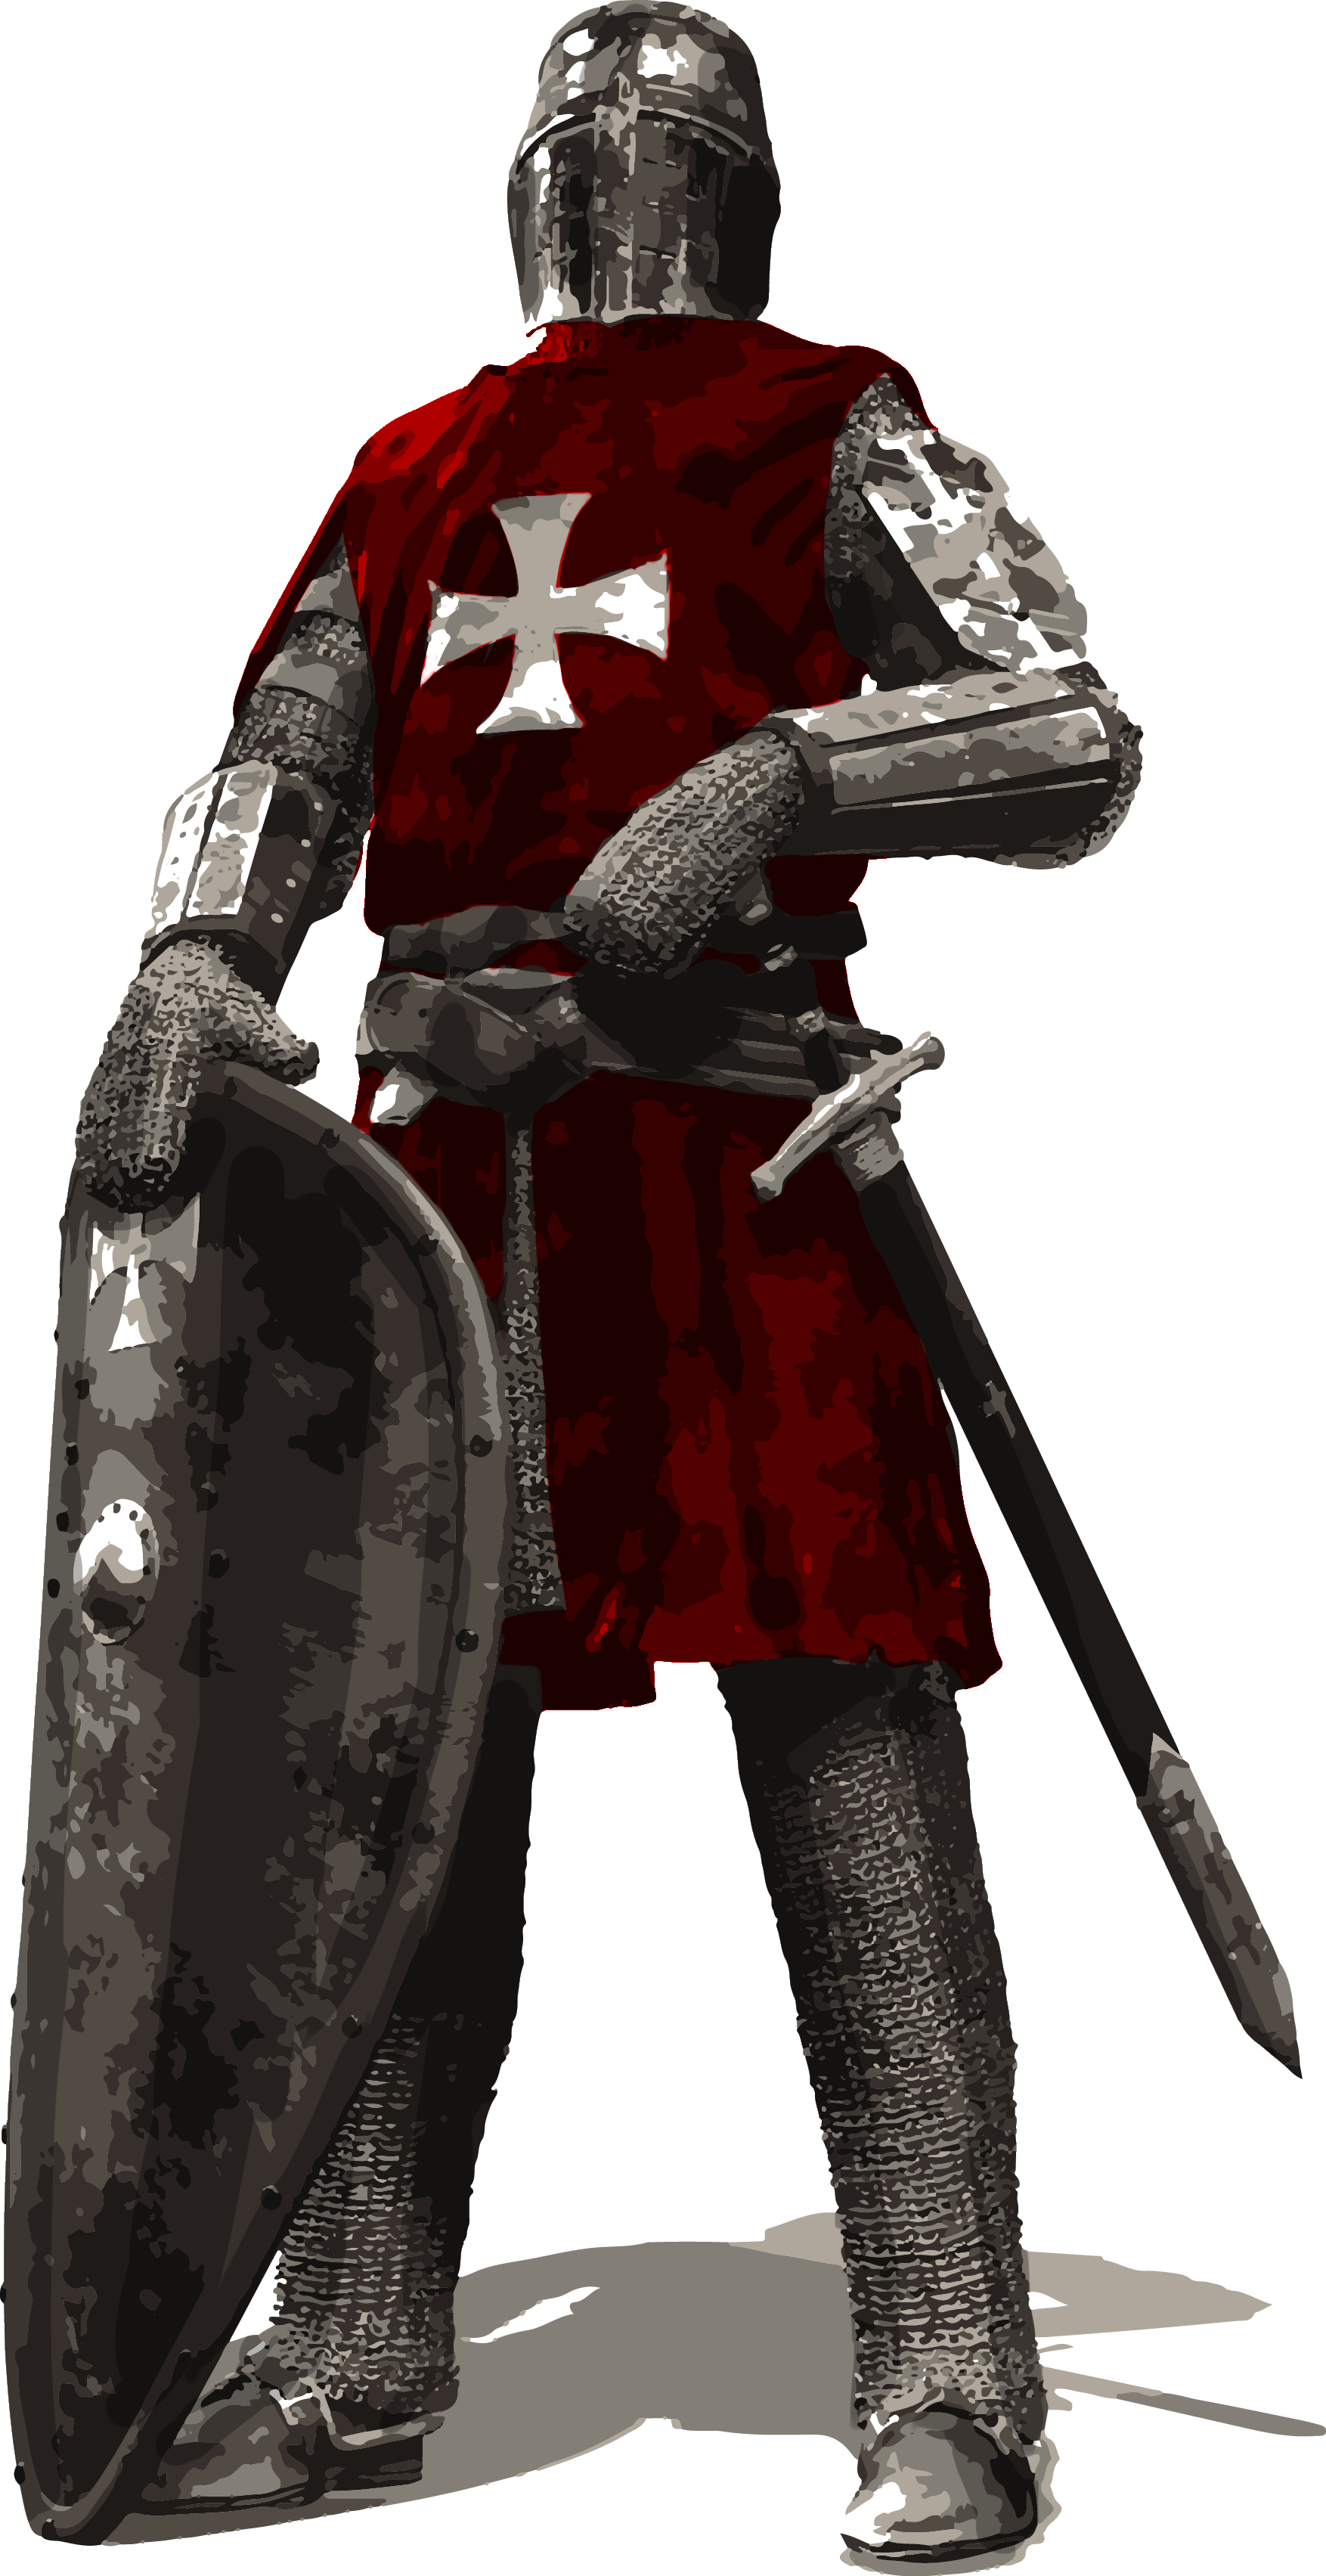 Transparent knight background. Check all